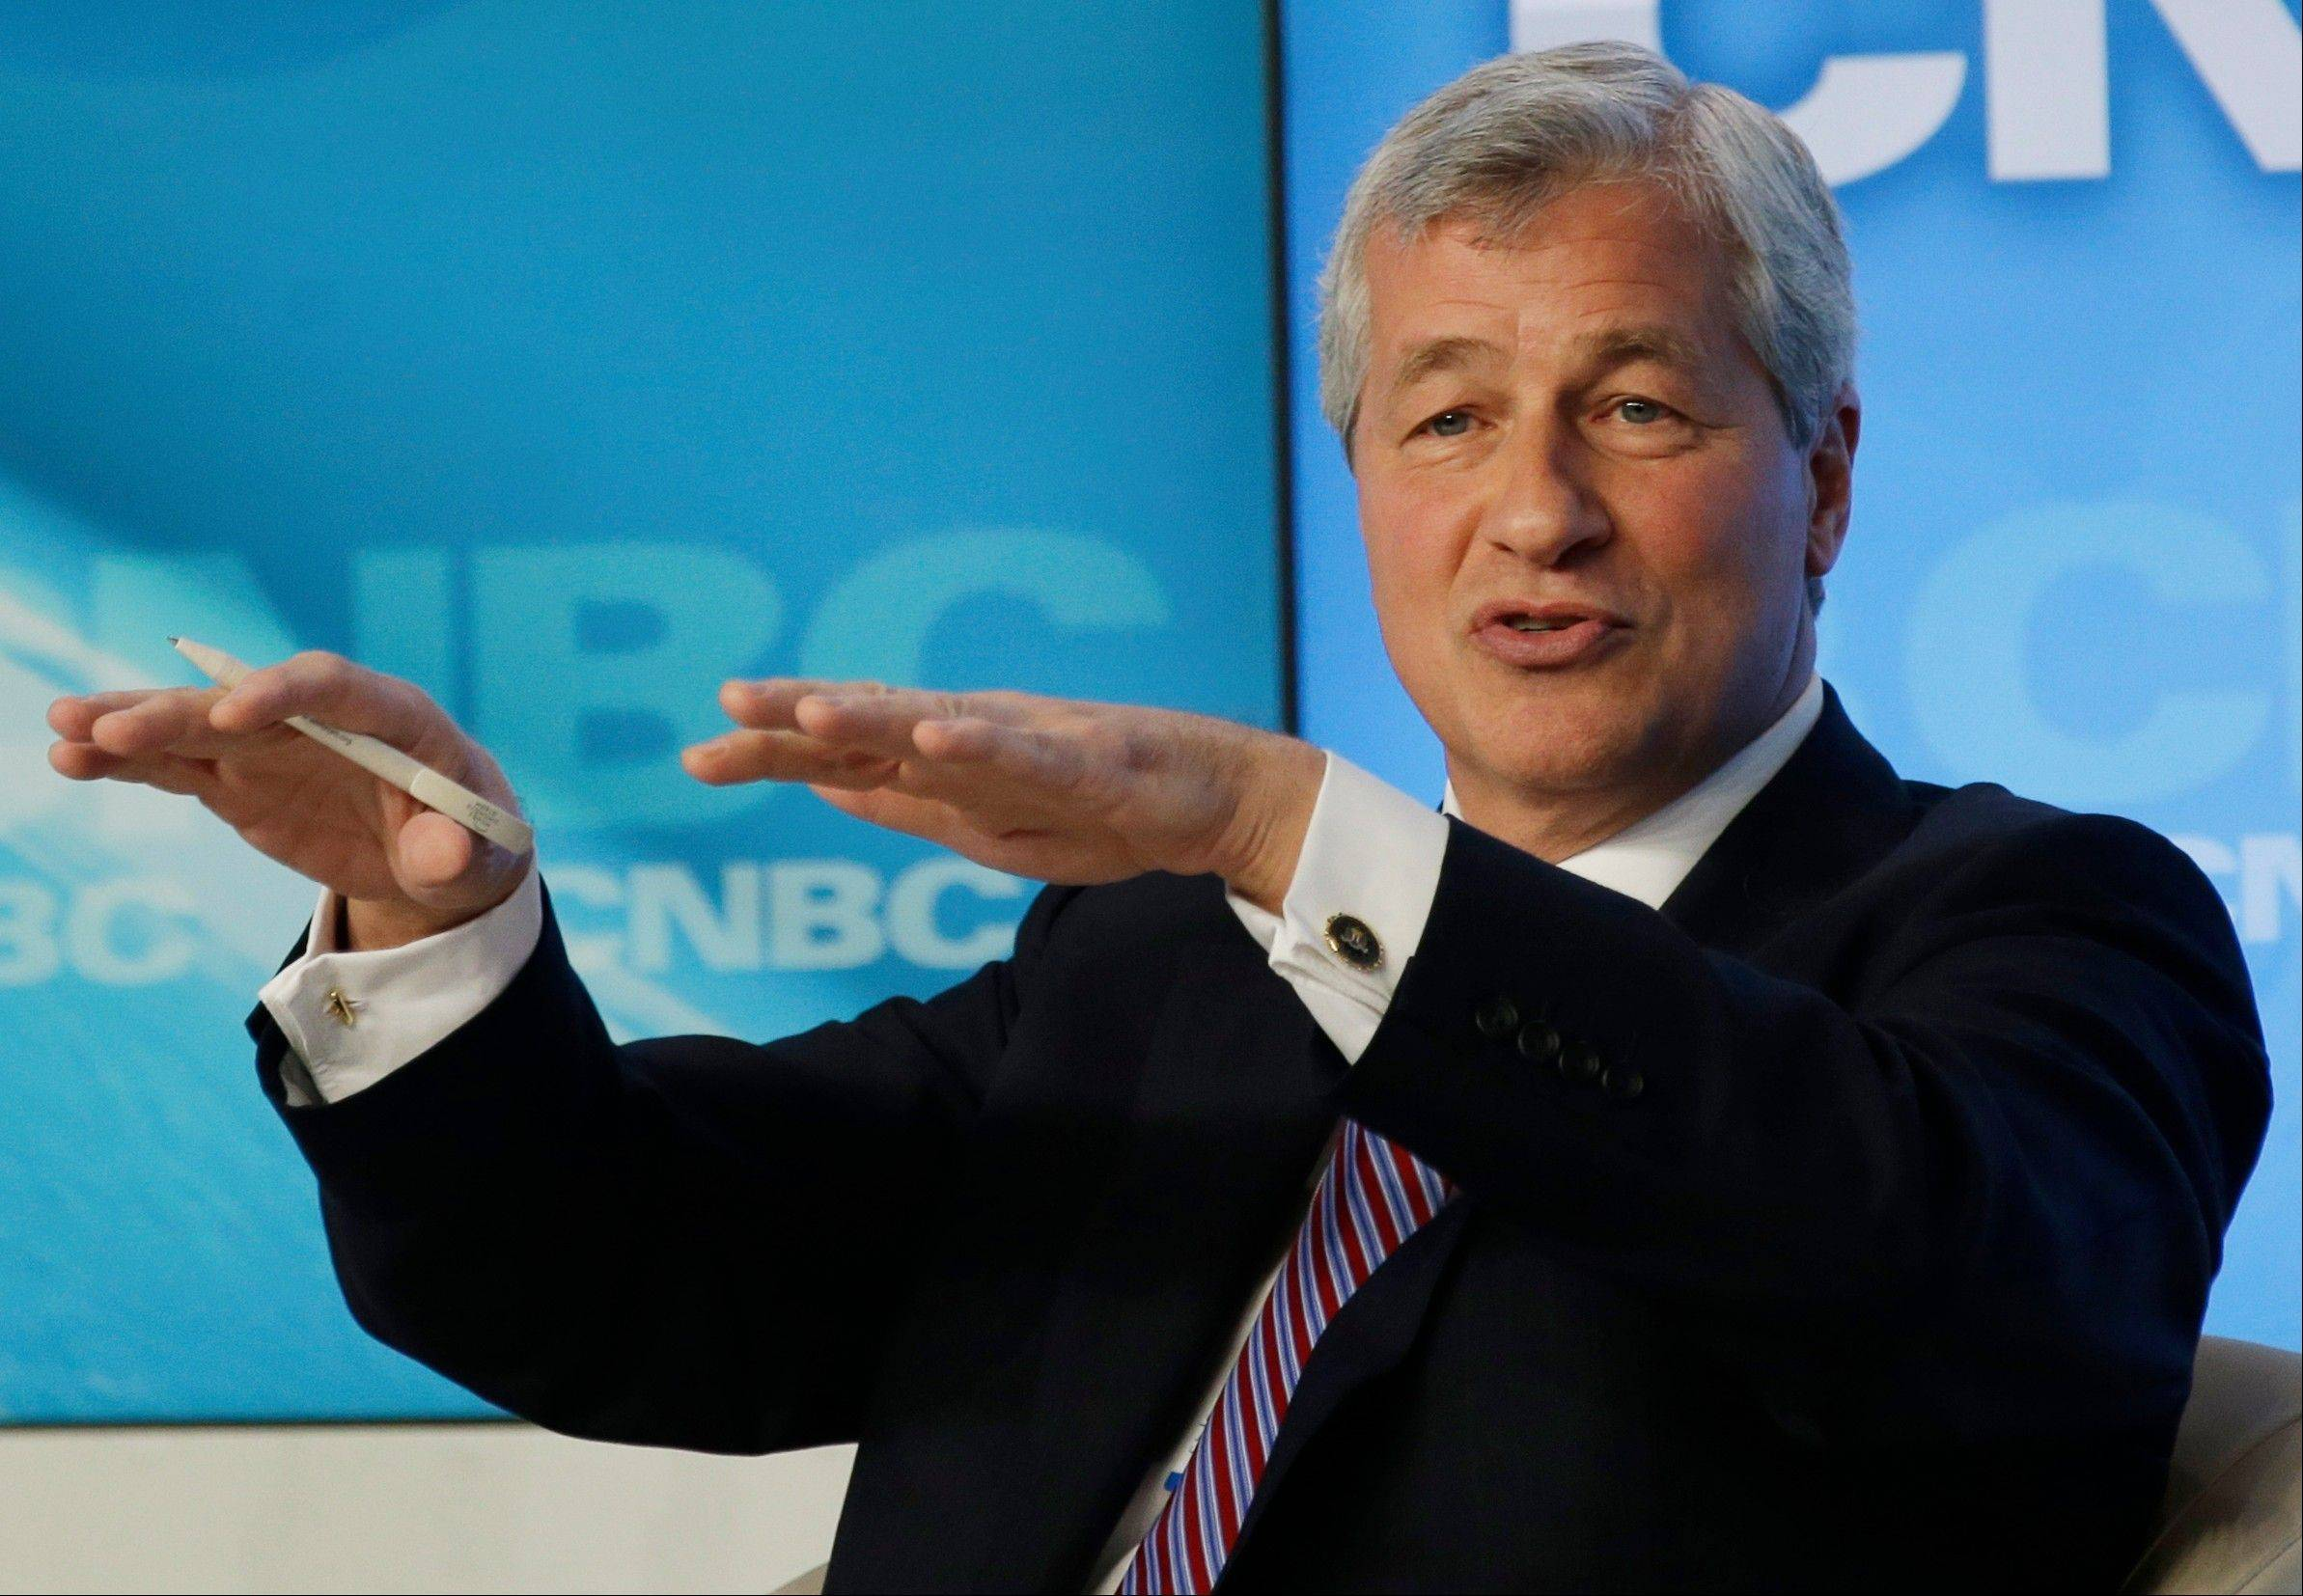 JPMorgan Chase CEO Jamie Dimon speaks Jan. 23 at the 43rd Annual Meeting of the World Economic Forum, WEF, in Davos, Switzerland.